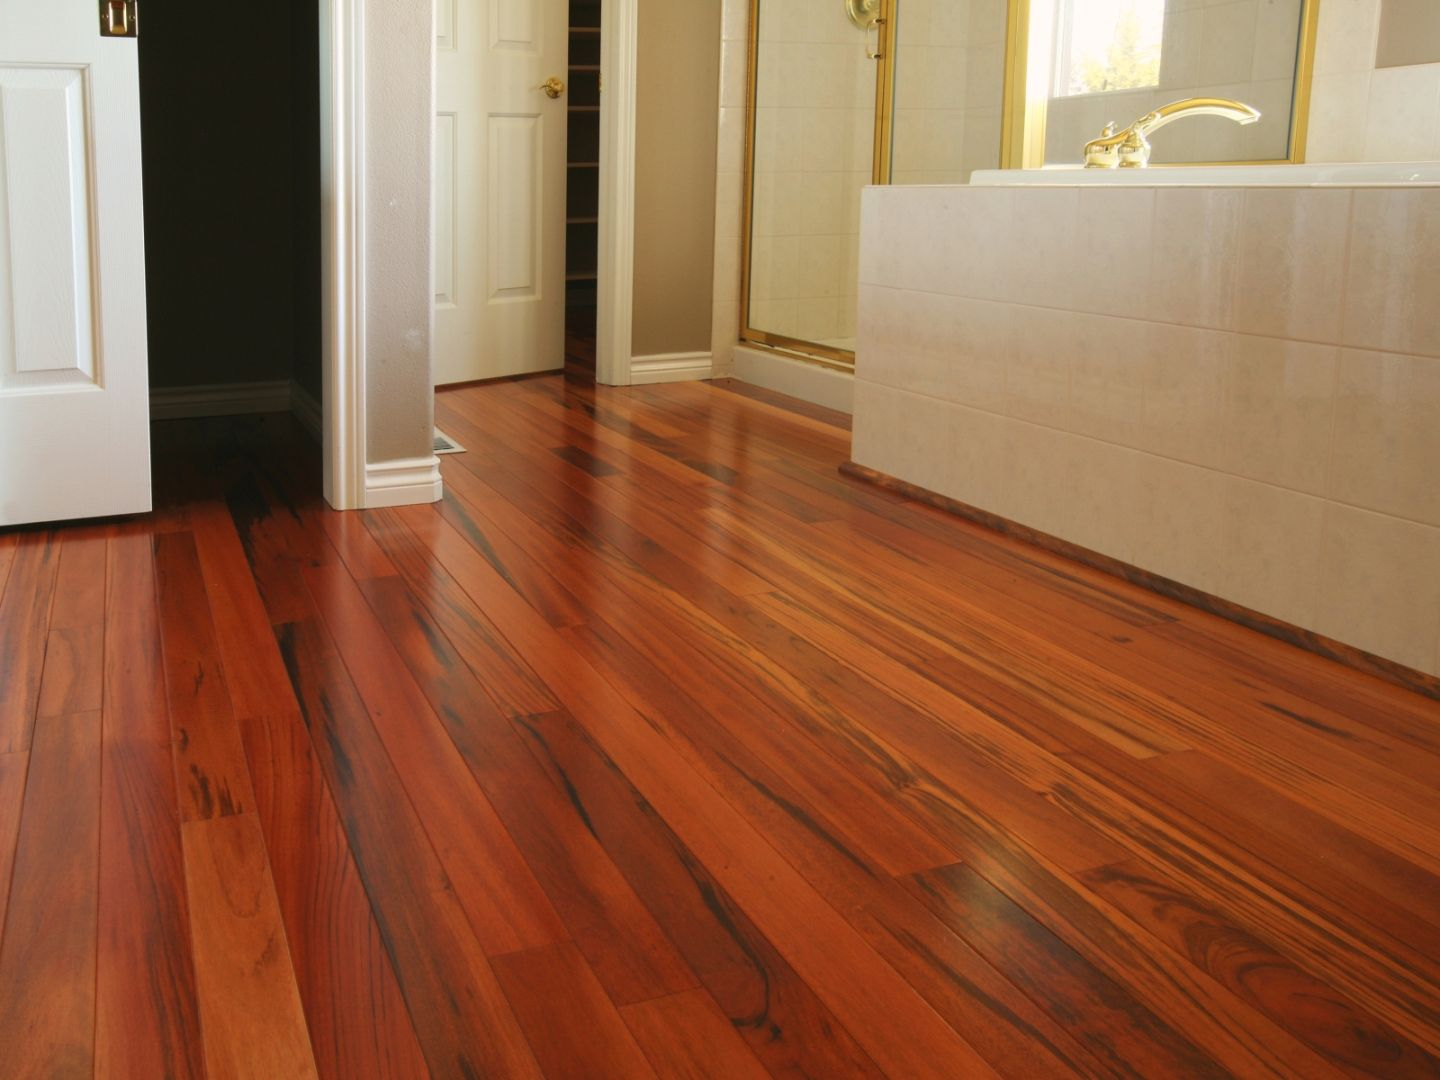 Amazing Best Way To Disinfect Hardwood Floors Part - 13: Best Way To Clean Wood Floors Best Way To Clean And Shine Wood Floors .